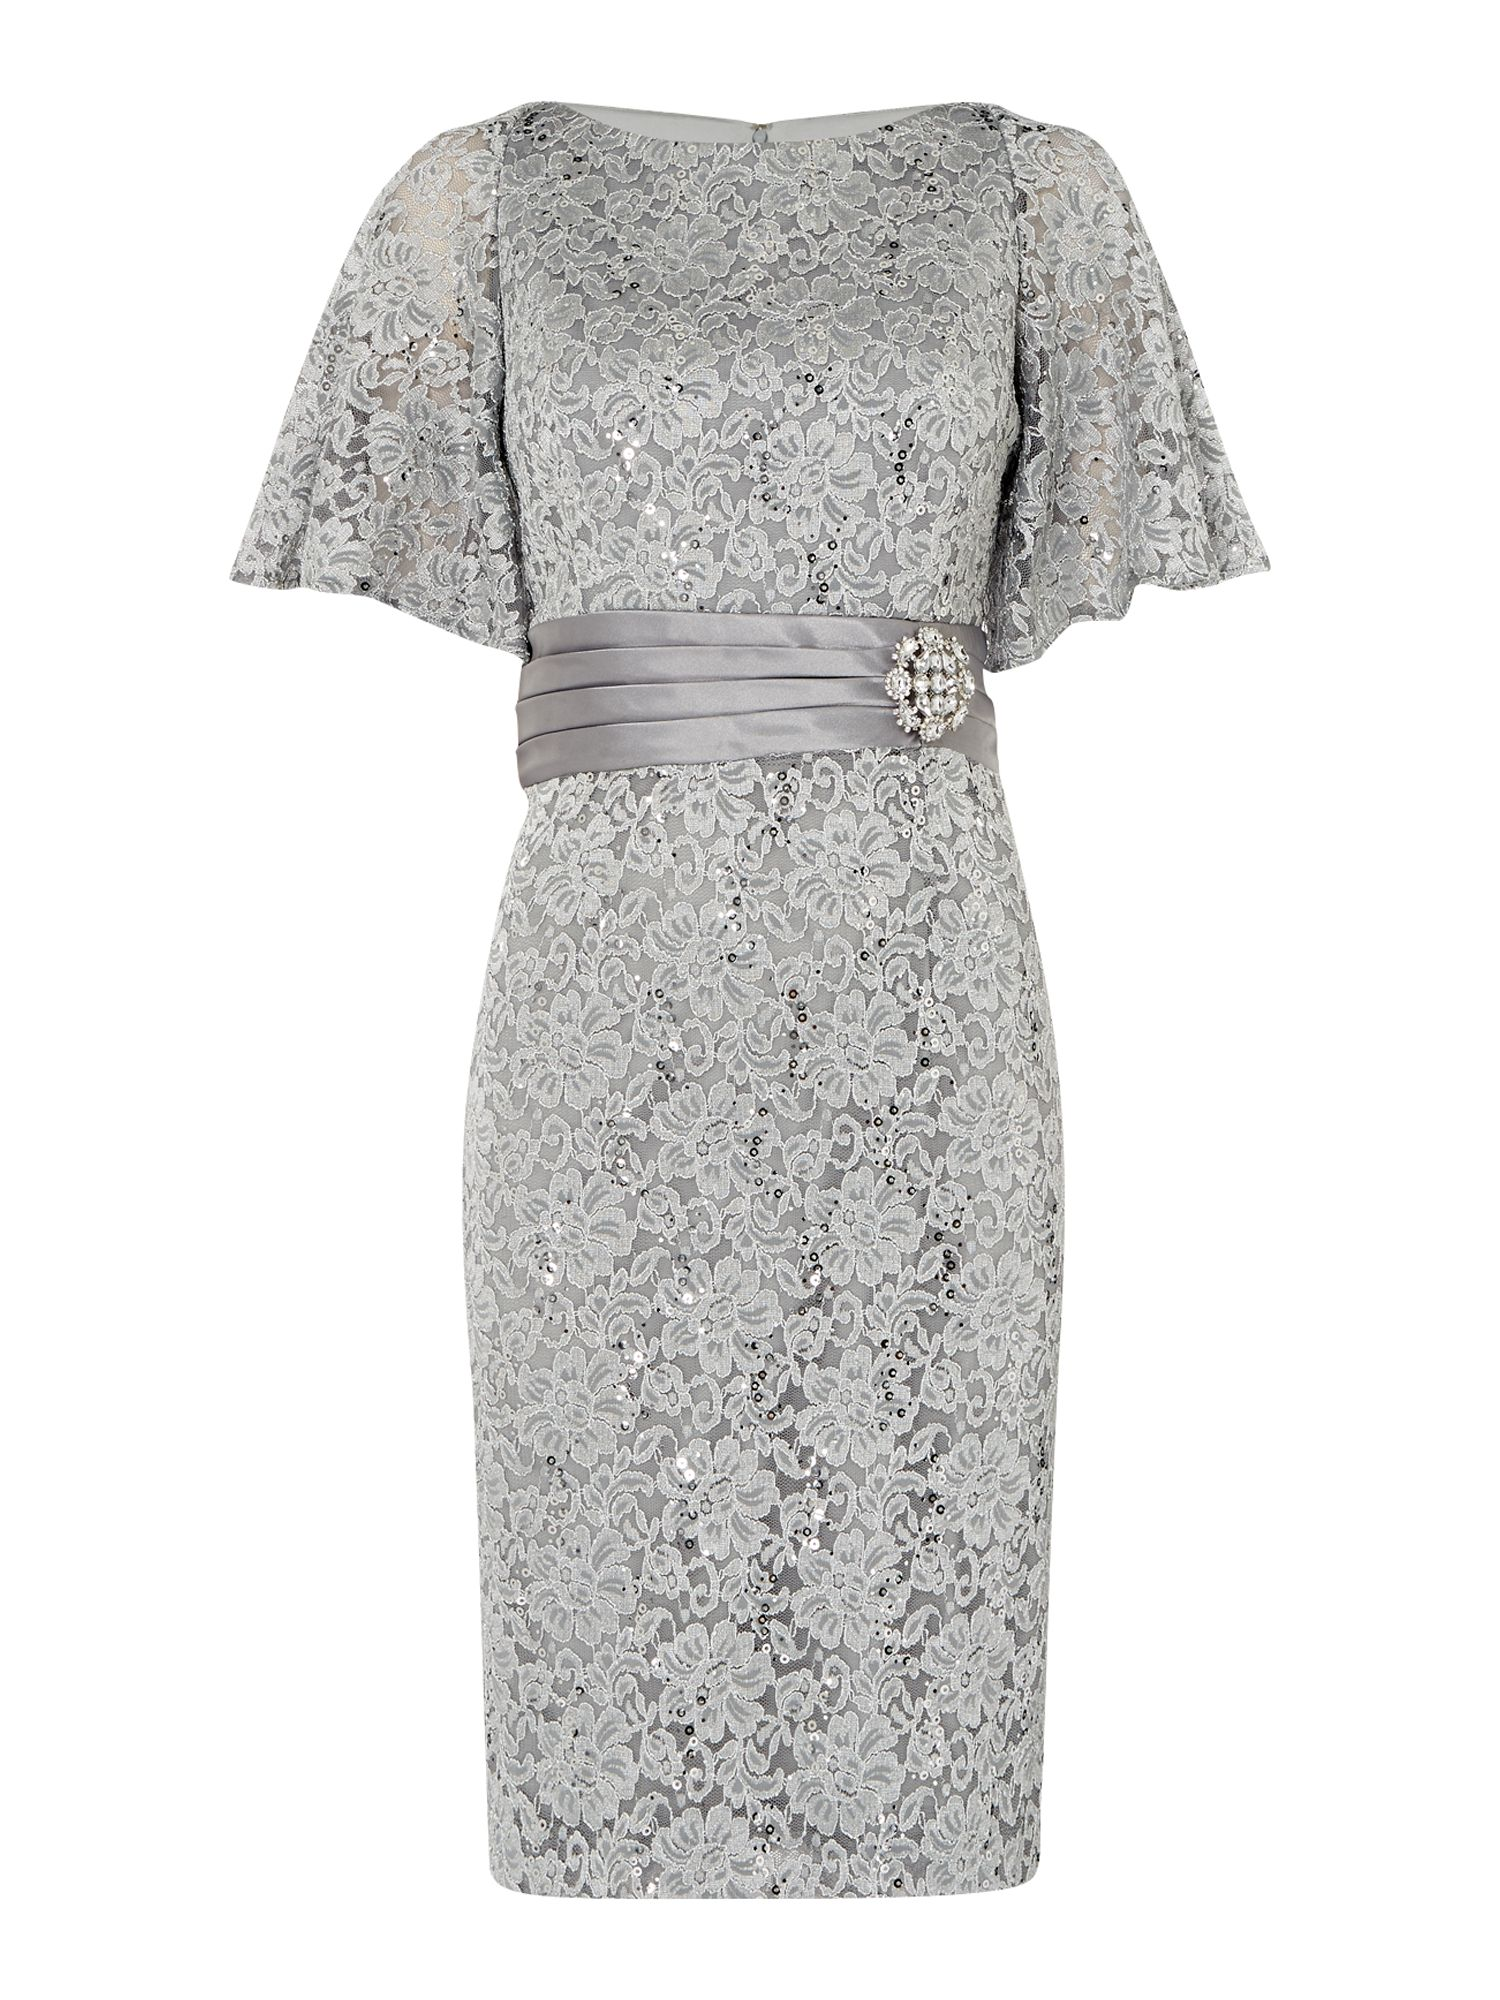 Eliza J All over lace dress with fan sleeve £140.00 AT vintagedancer.com